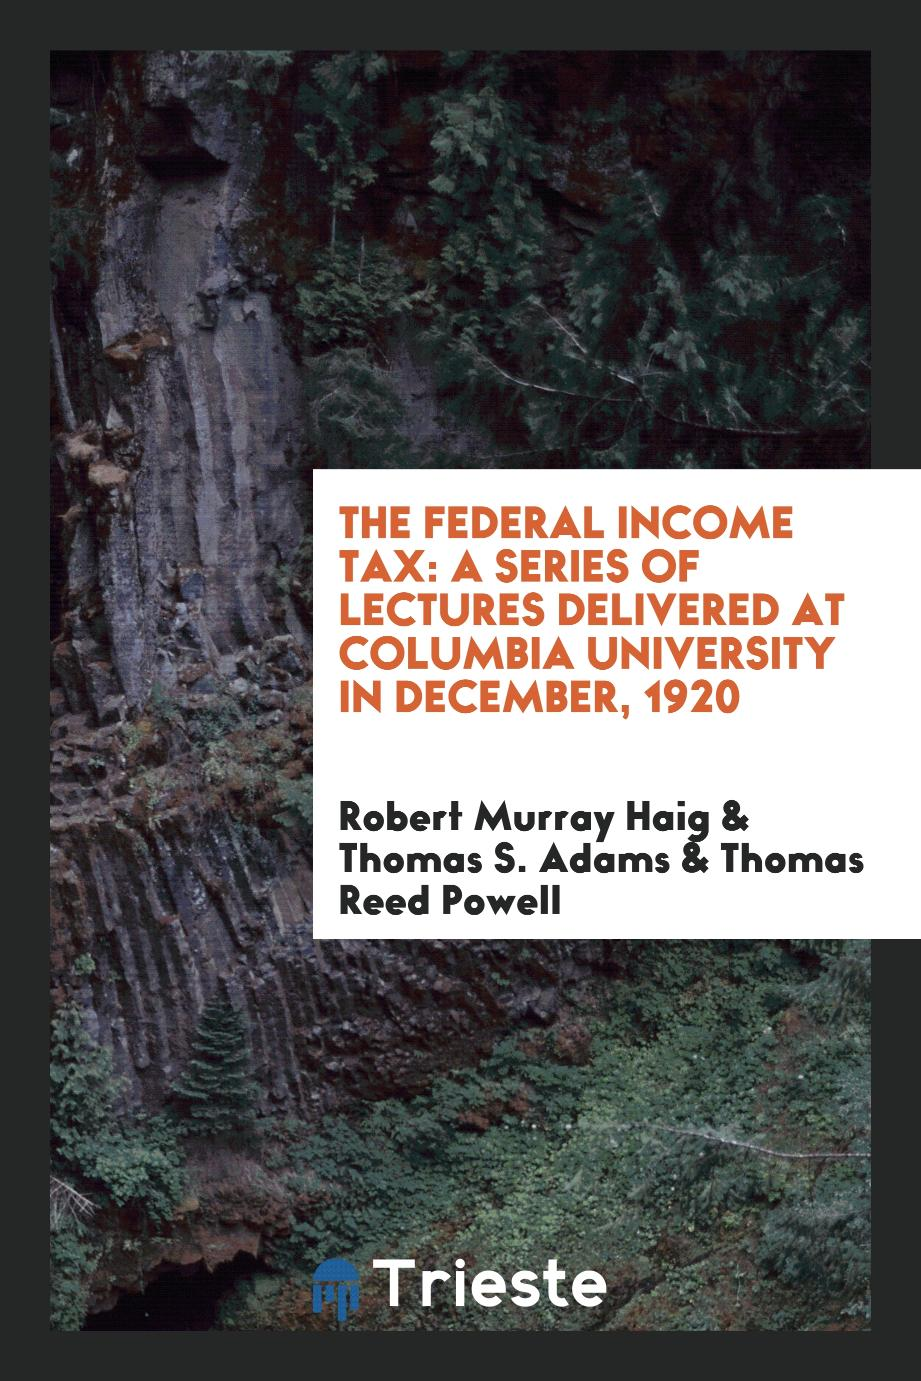 The Federal Income Tax: A Series of Lectures Delivered at Columbia University in December, 1920